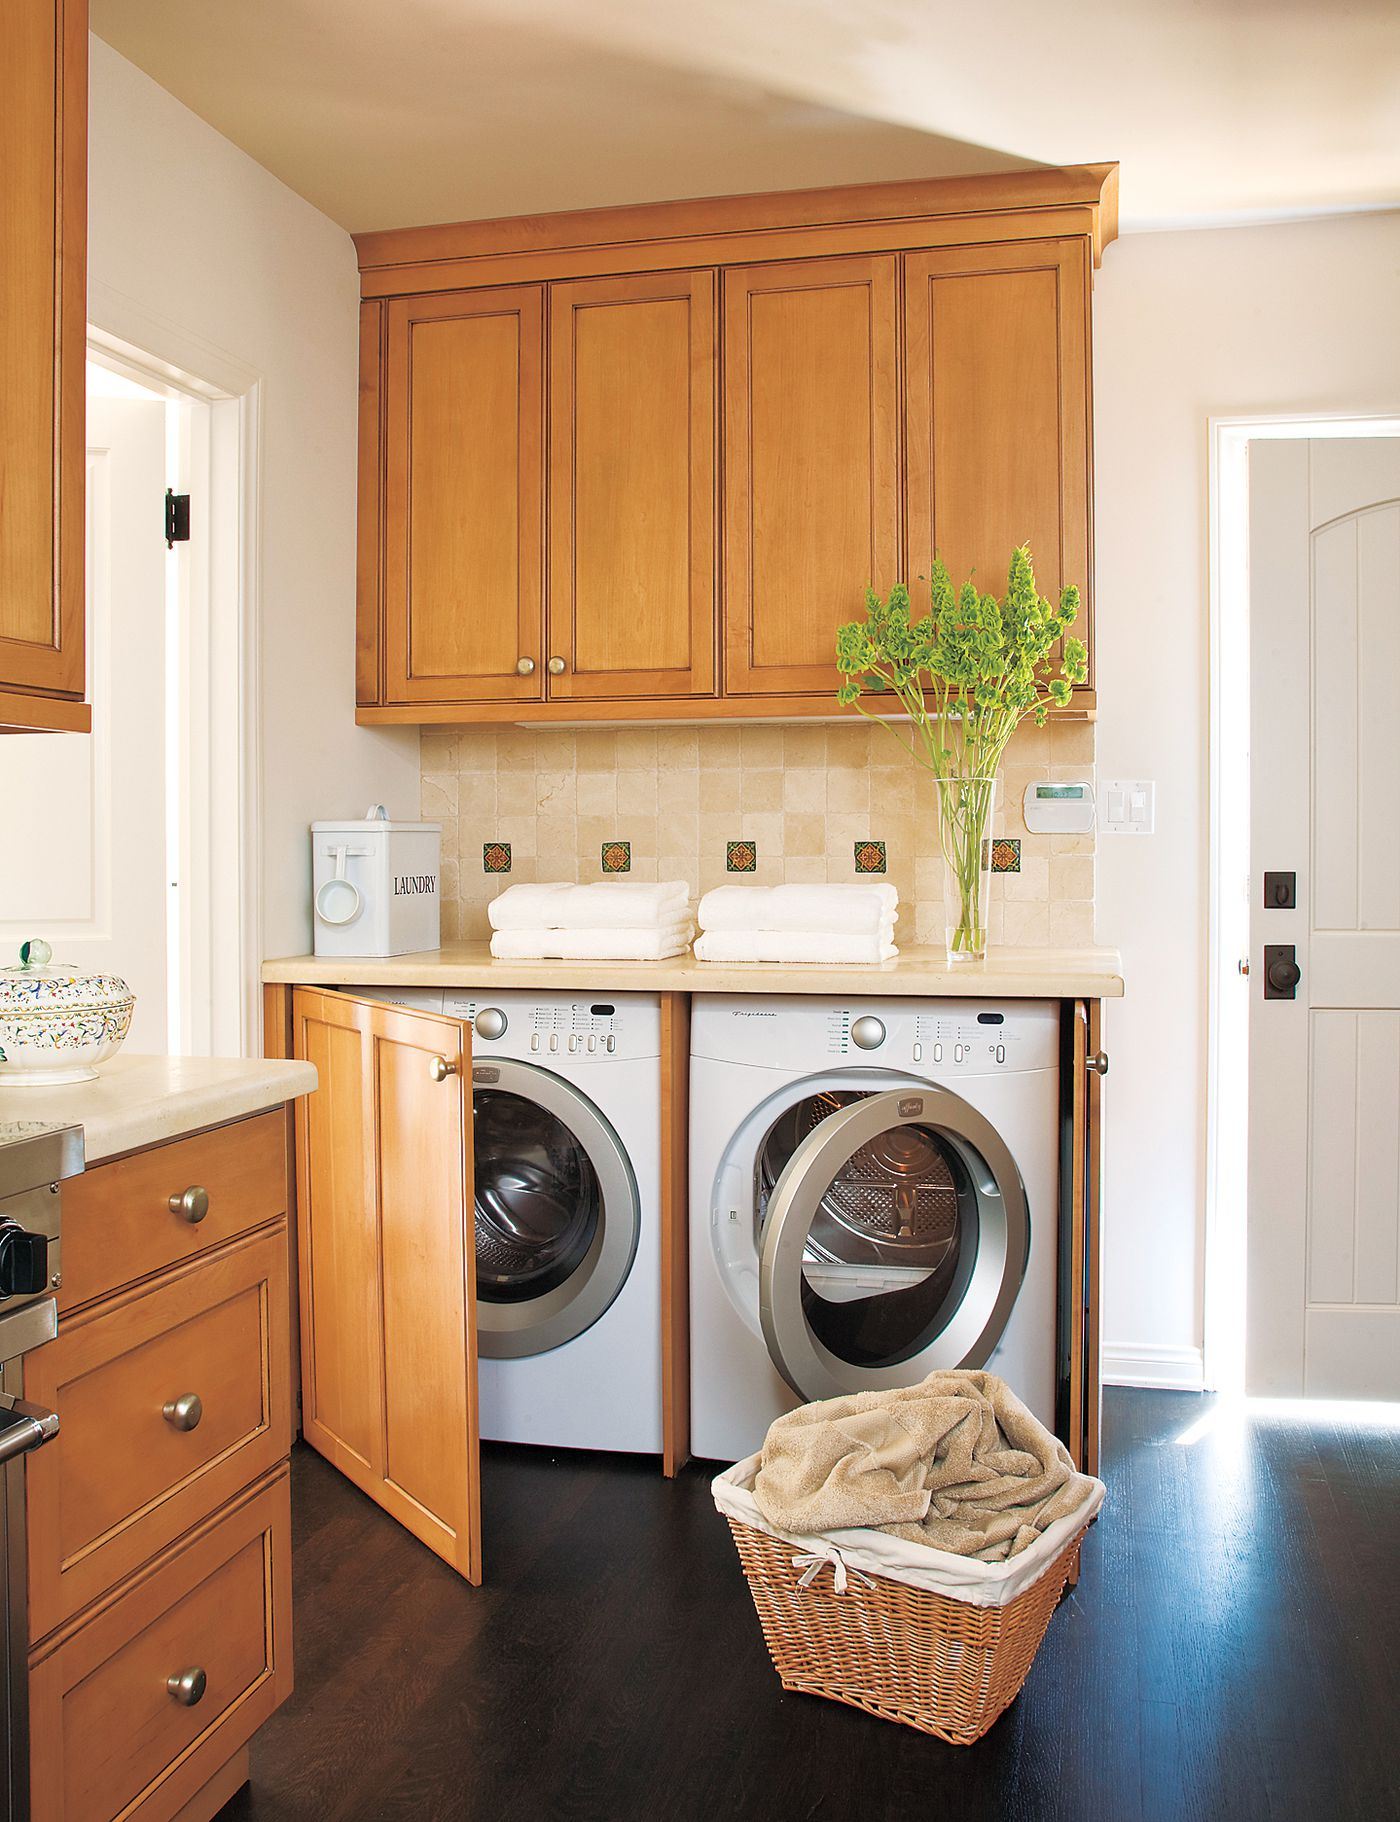 27 Ideas For A Fully Loaded Laundry Room This Old House